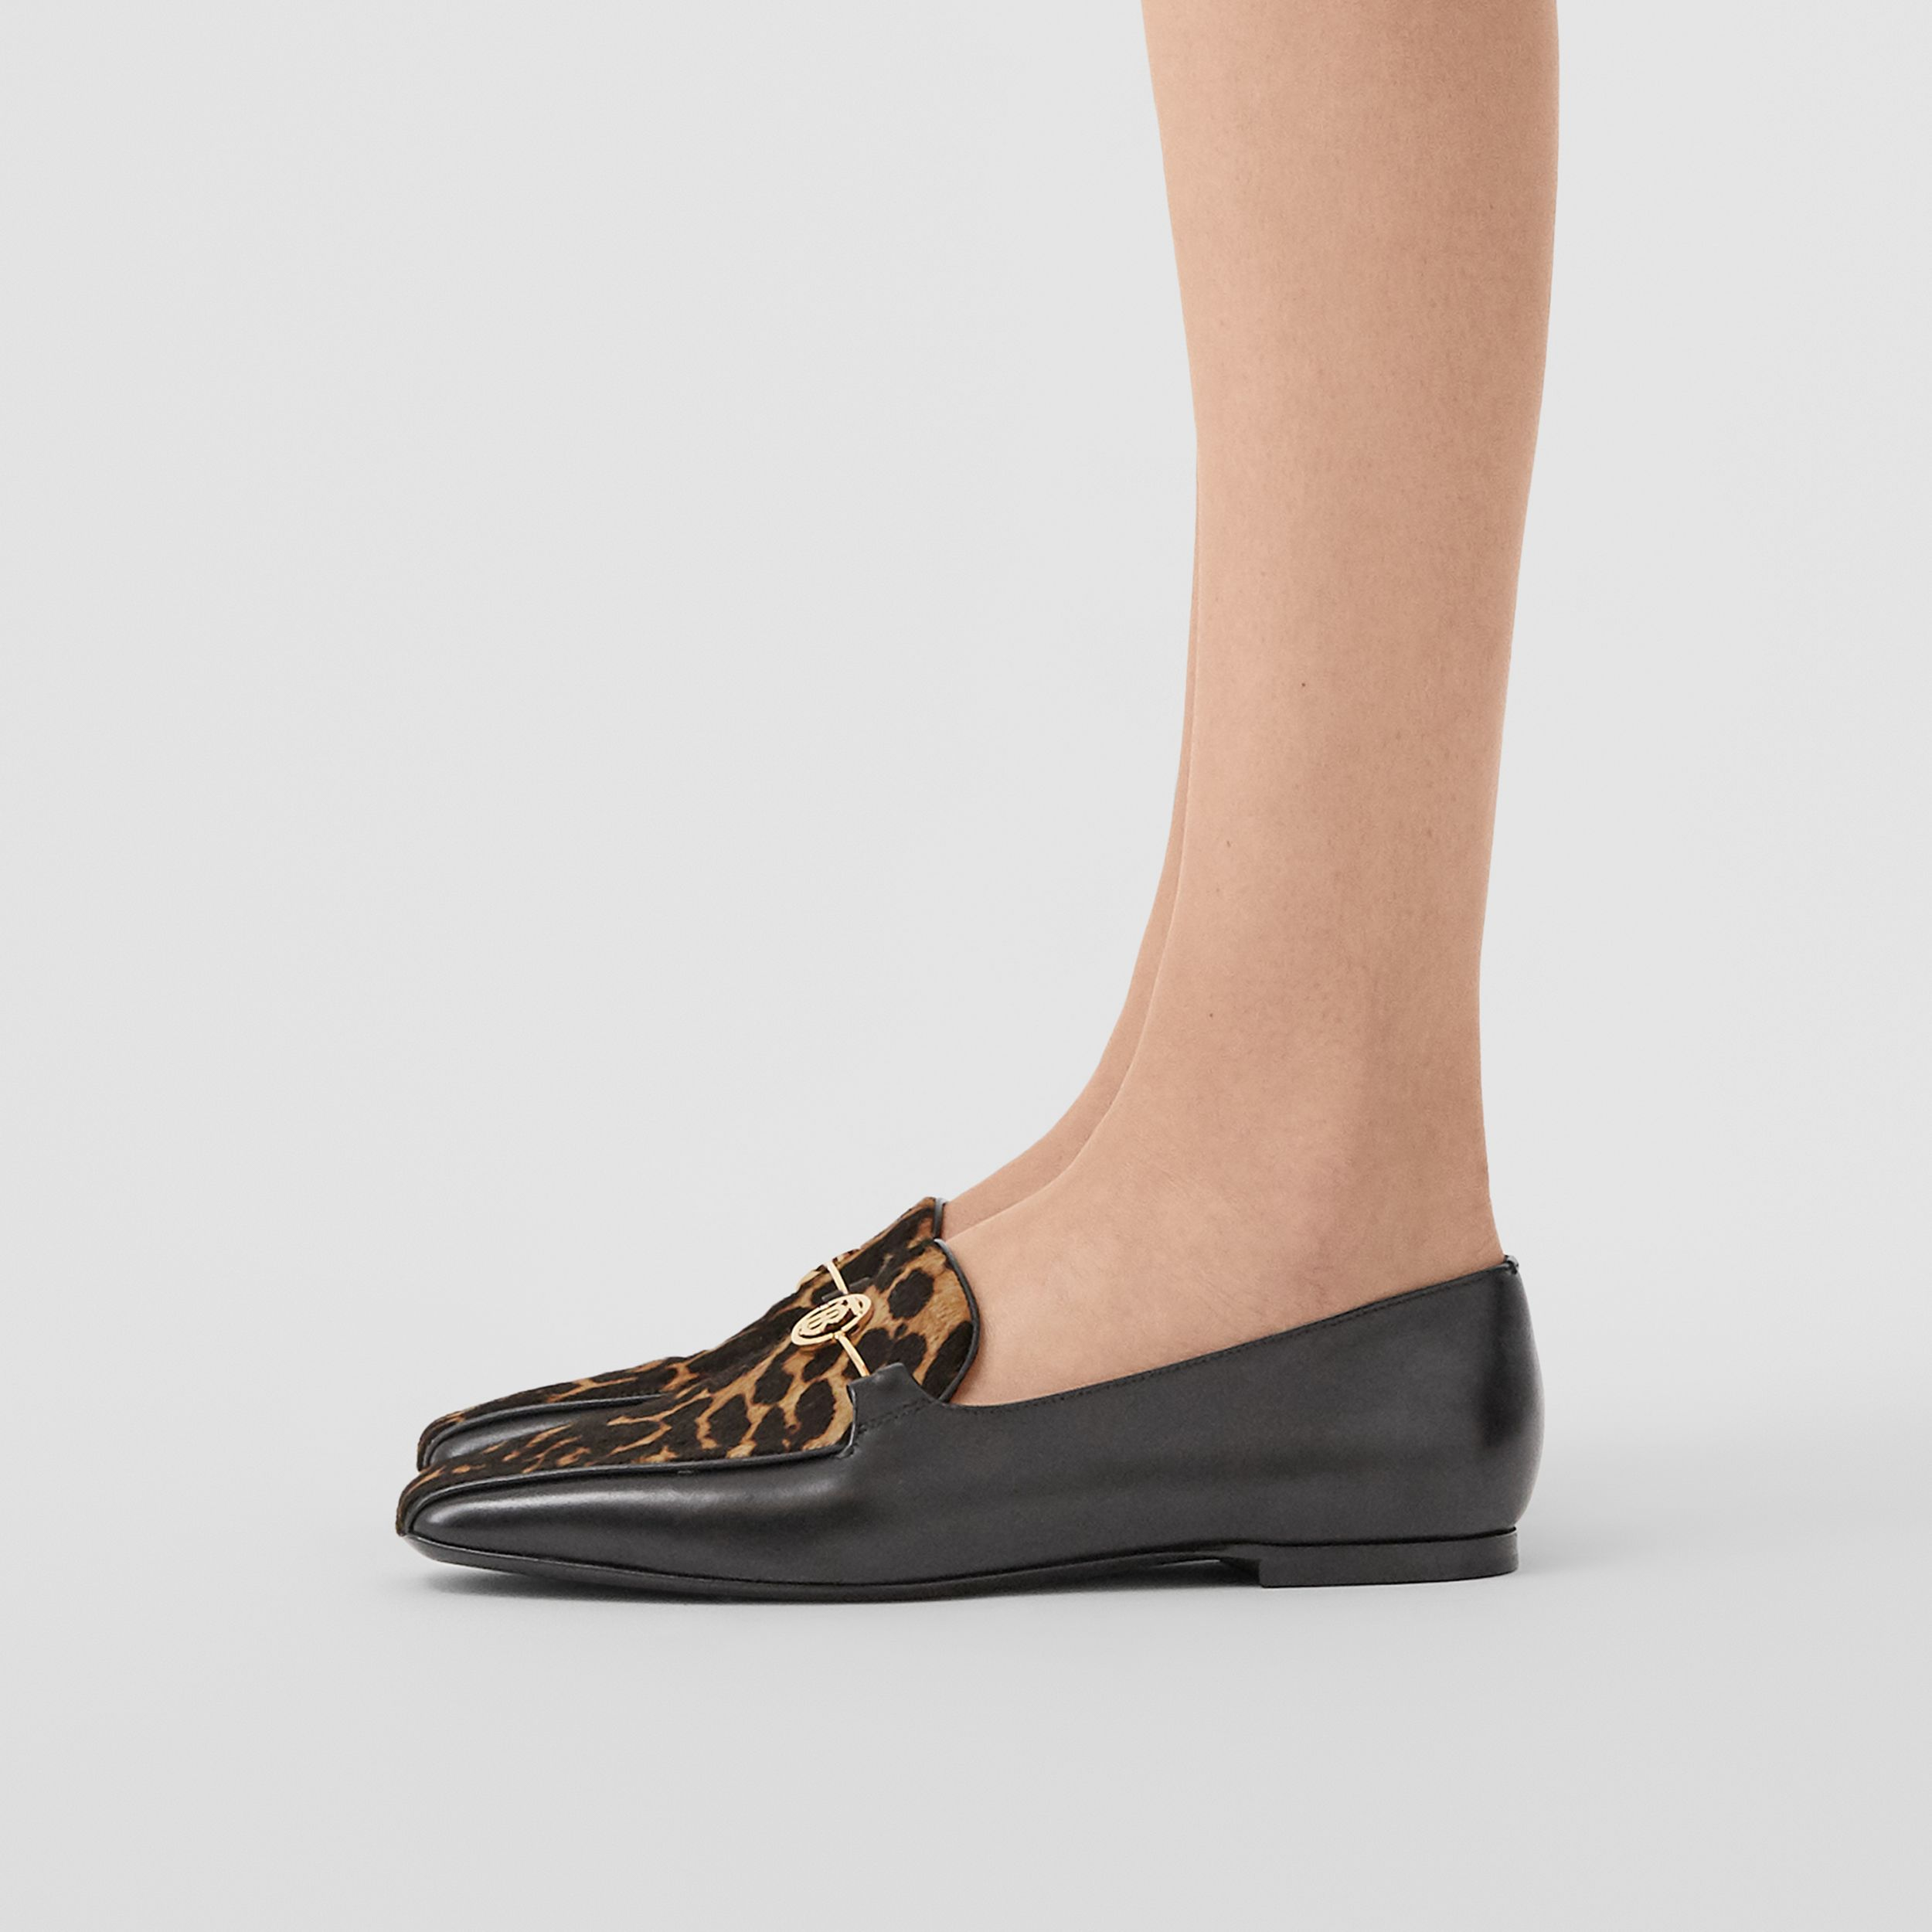 Leopard Print Calf Hair and Leather Loafers in Black/leopard - Women | Burberry United States - 3